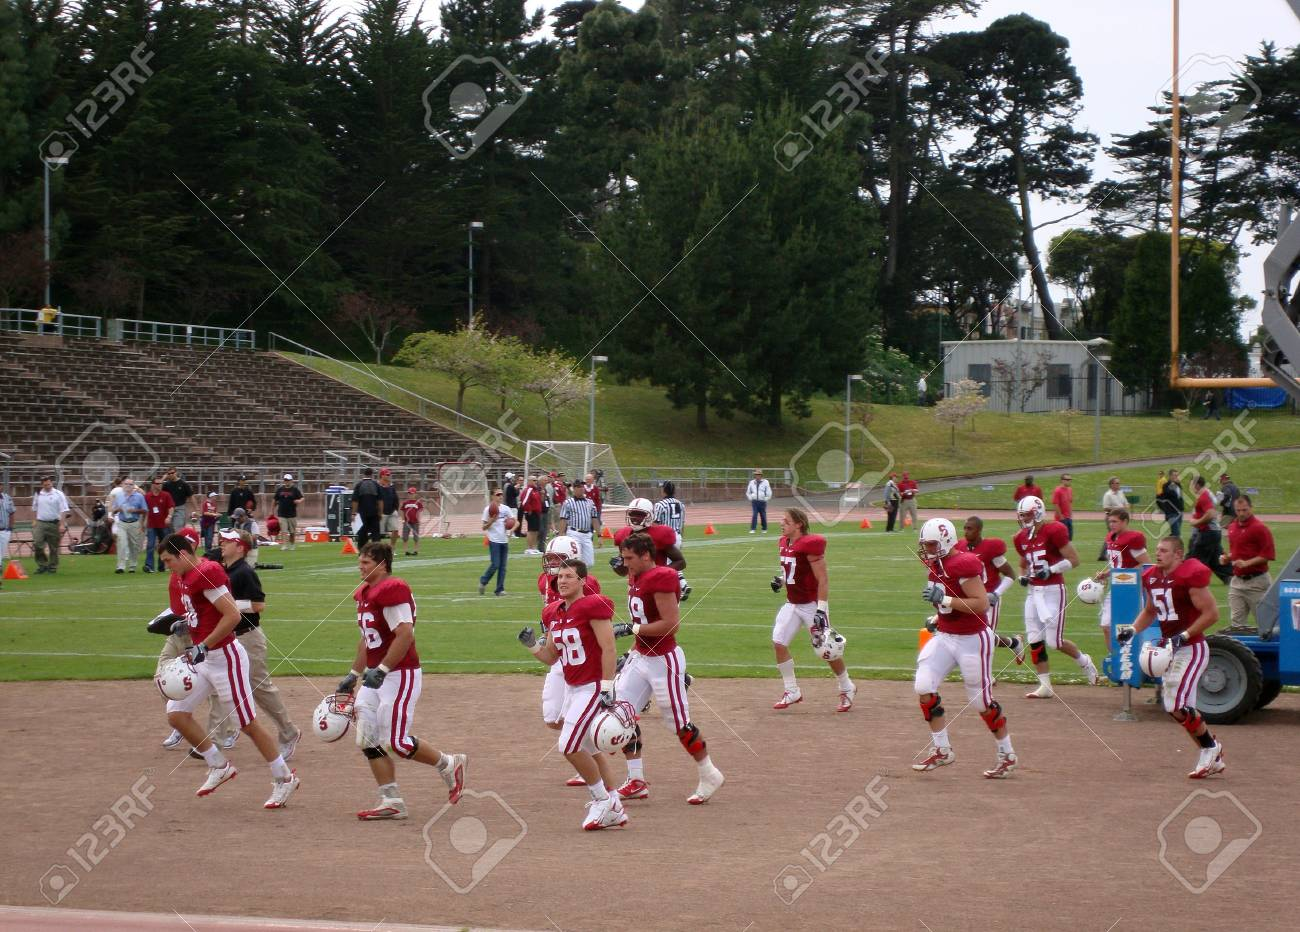 Stanfords players run off the field at halftime during the 2010 Practice game . Taken April 17 2010 at historic Kezar Stadium in San Francisco California Stock Photo - 7525460